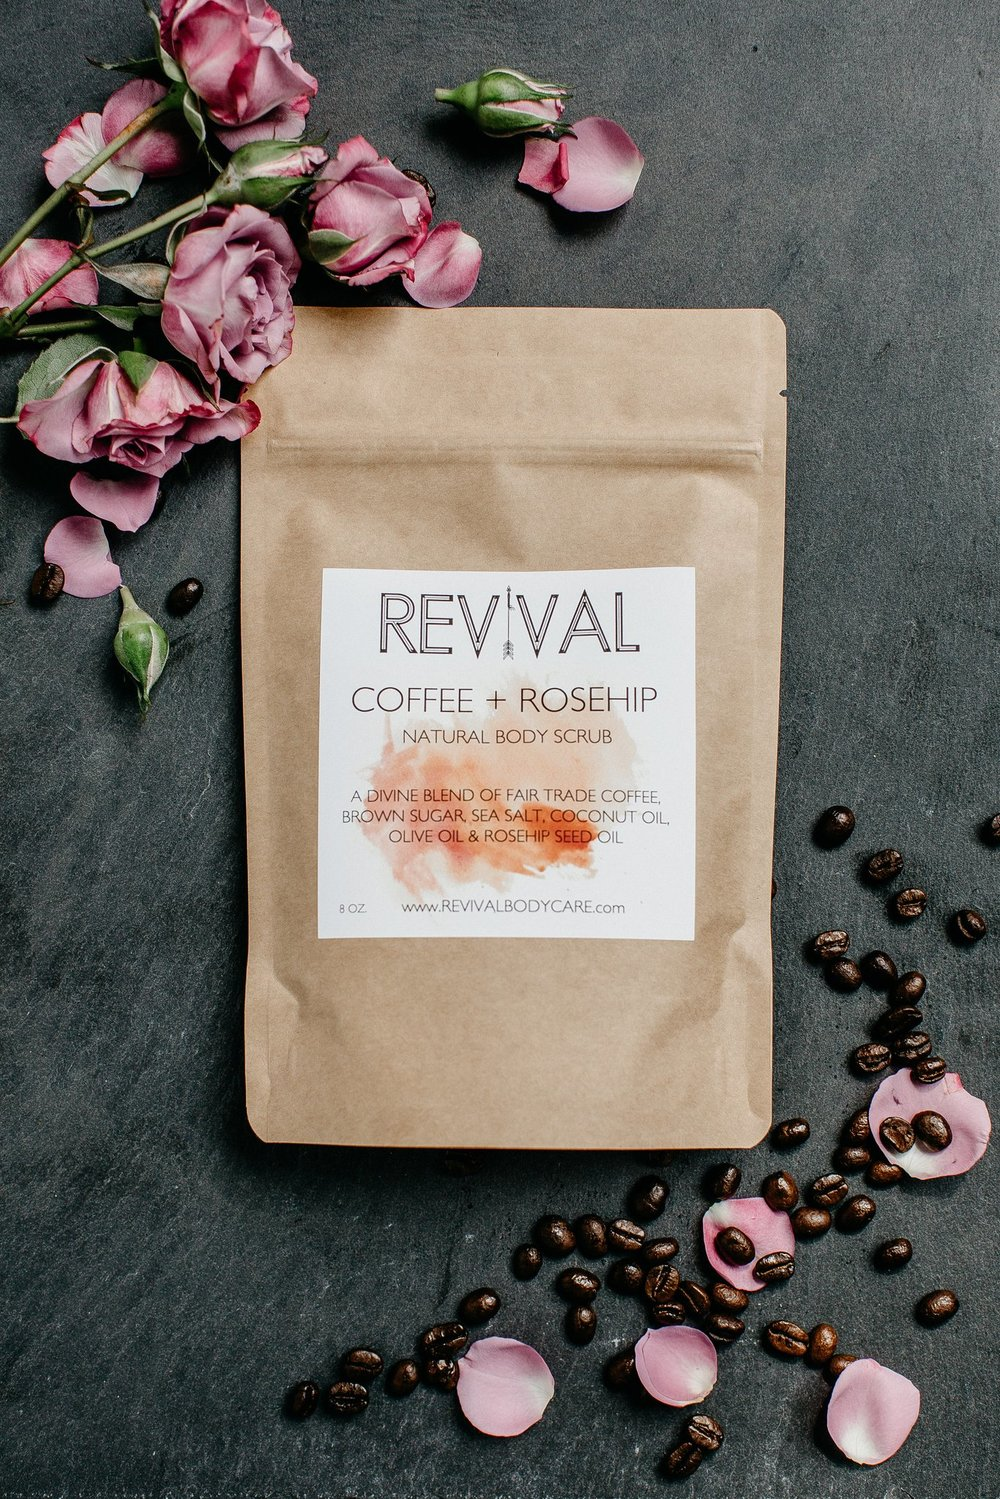 Coffee and rosehip exfoliating scrub by Revival Body Care